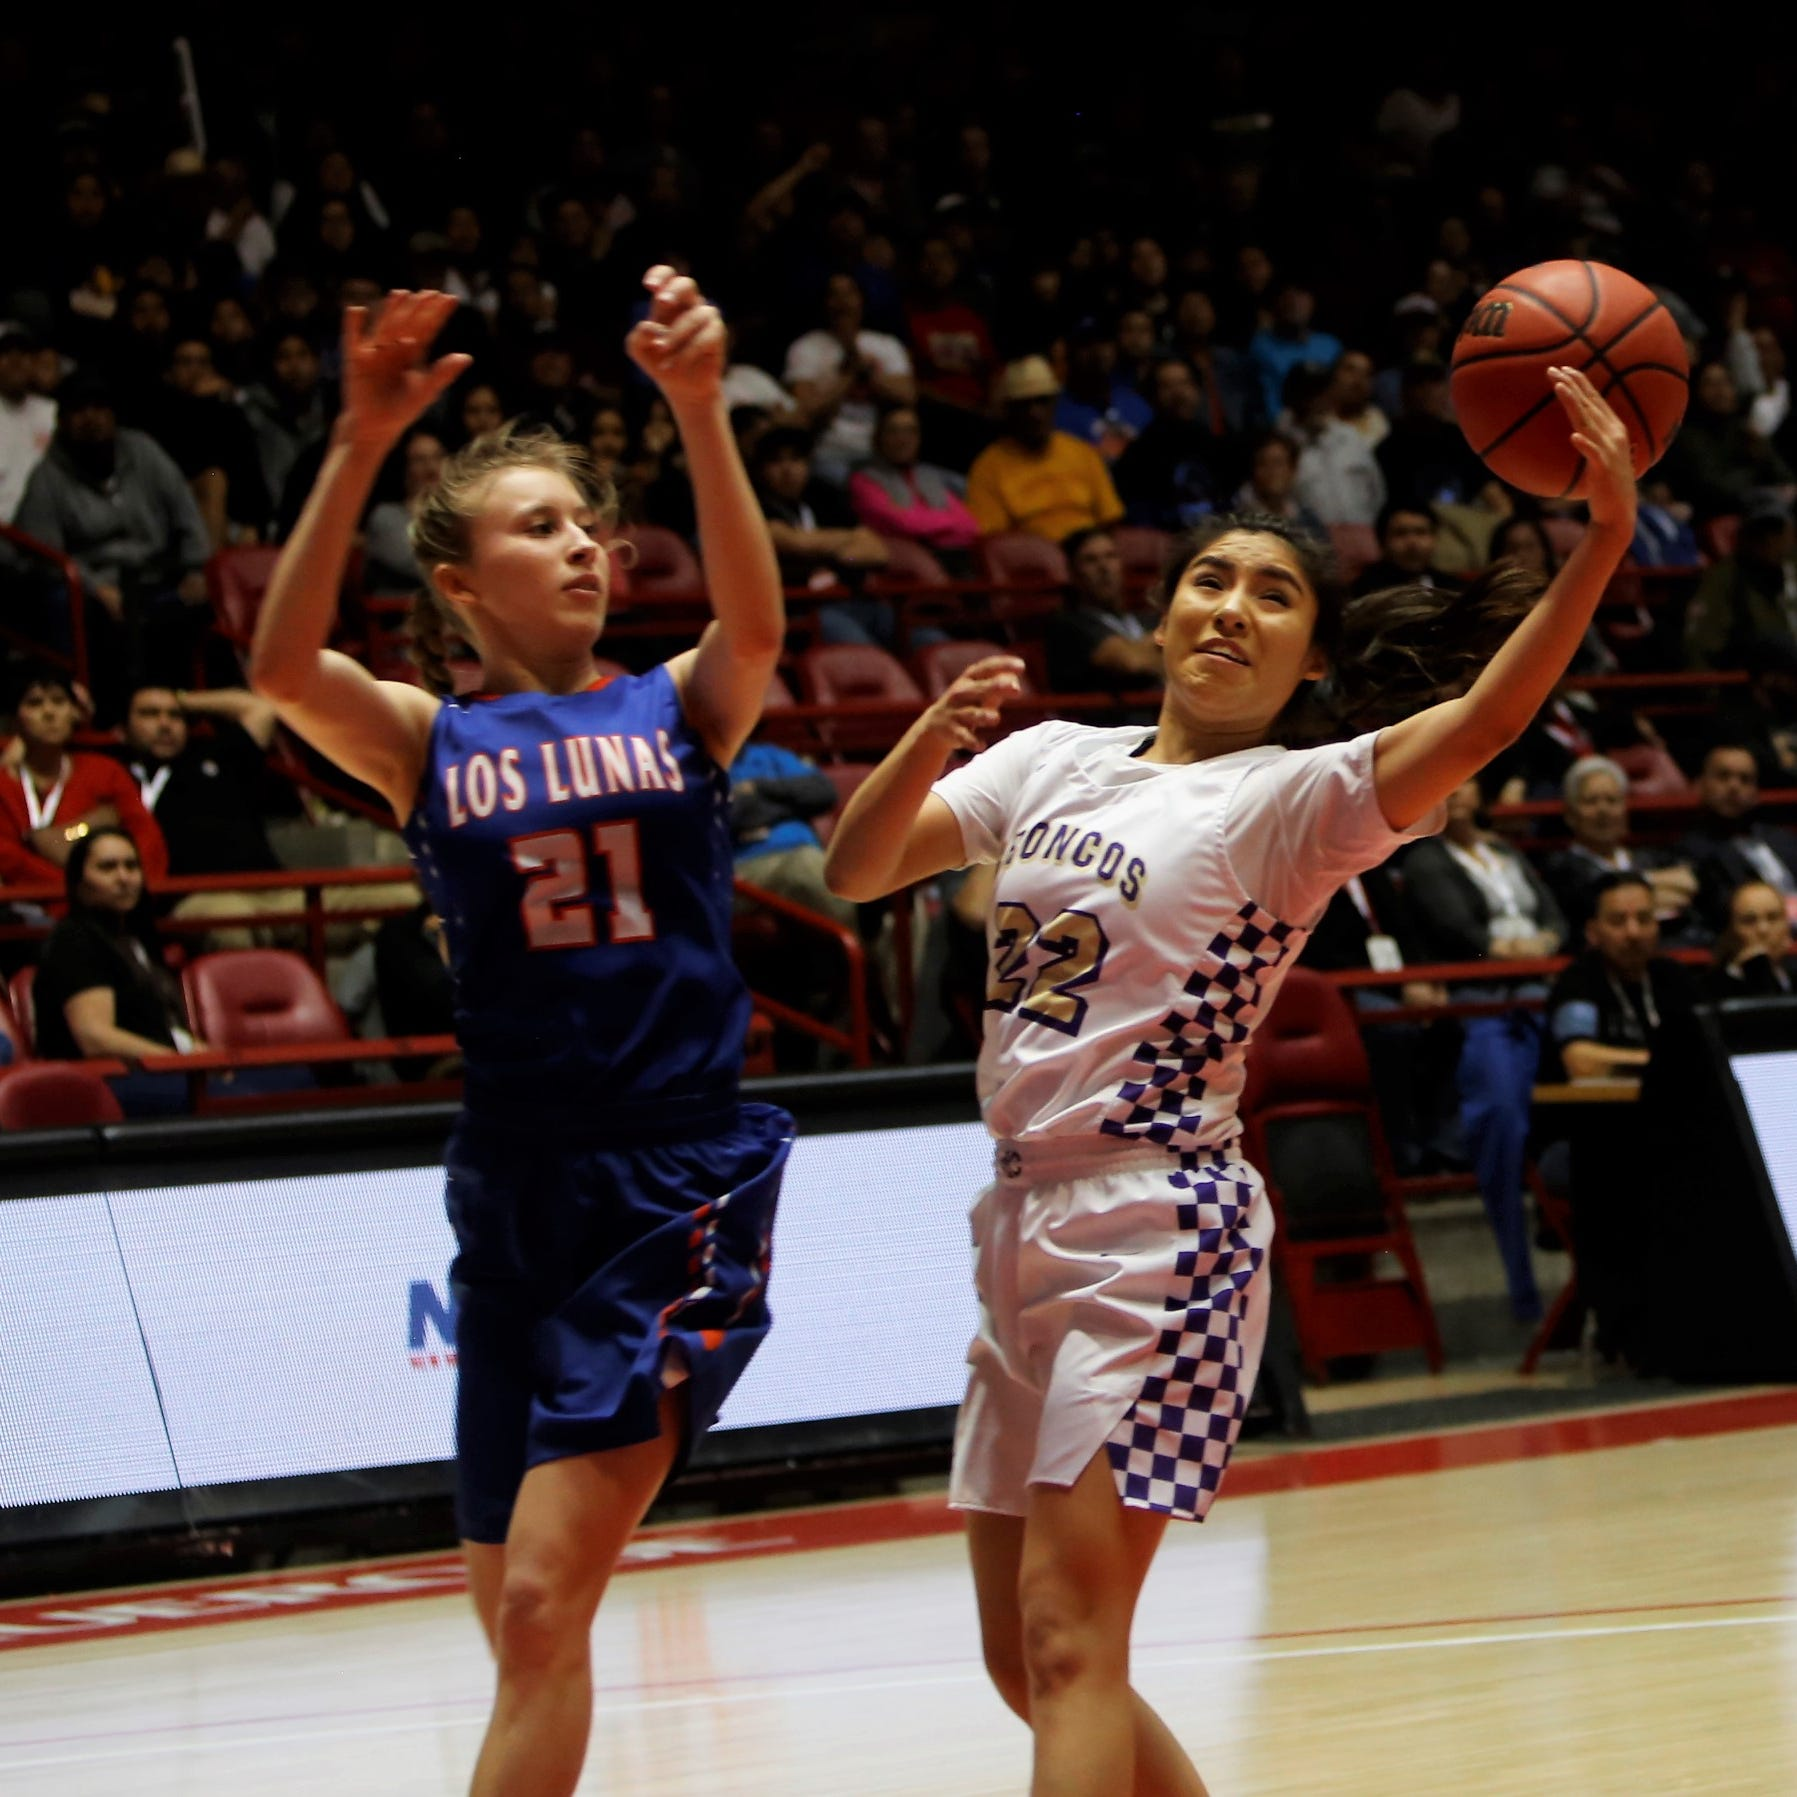 Kirtland falls in title game to Los Lunas